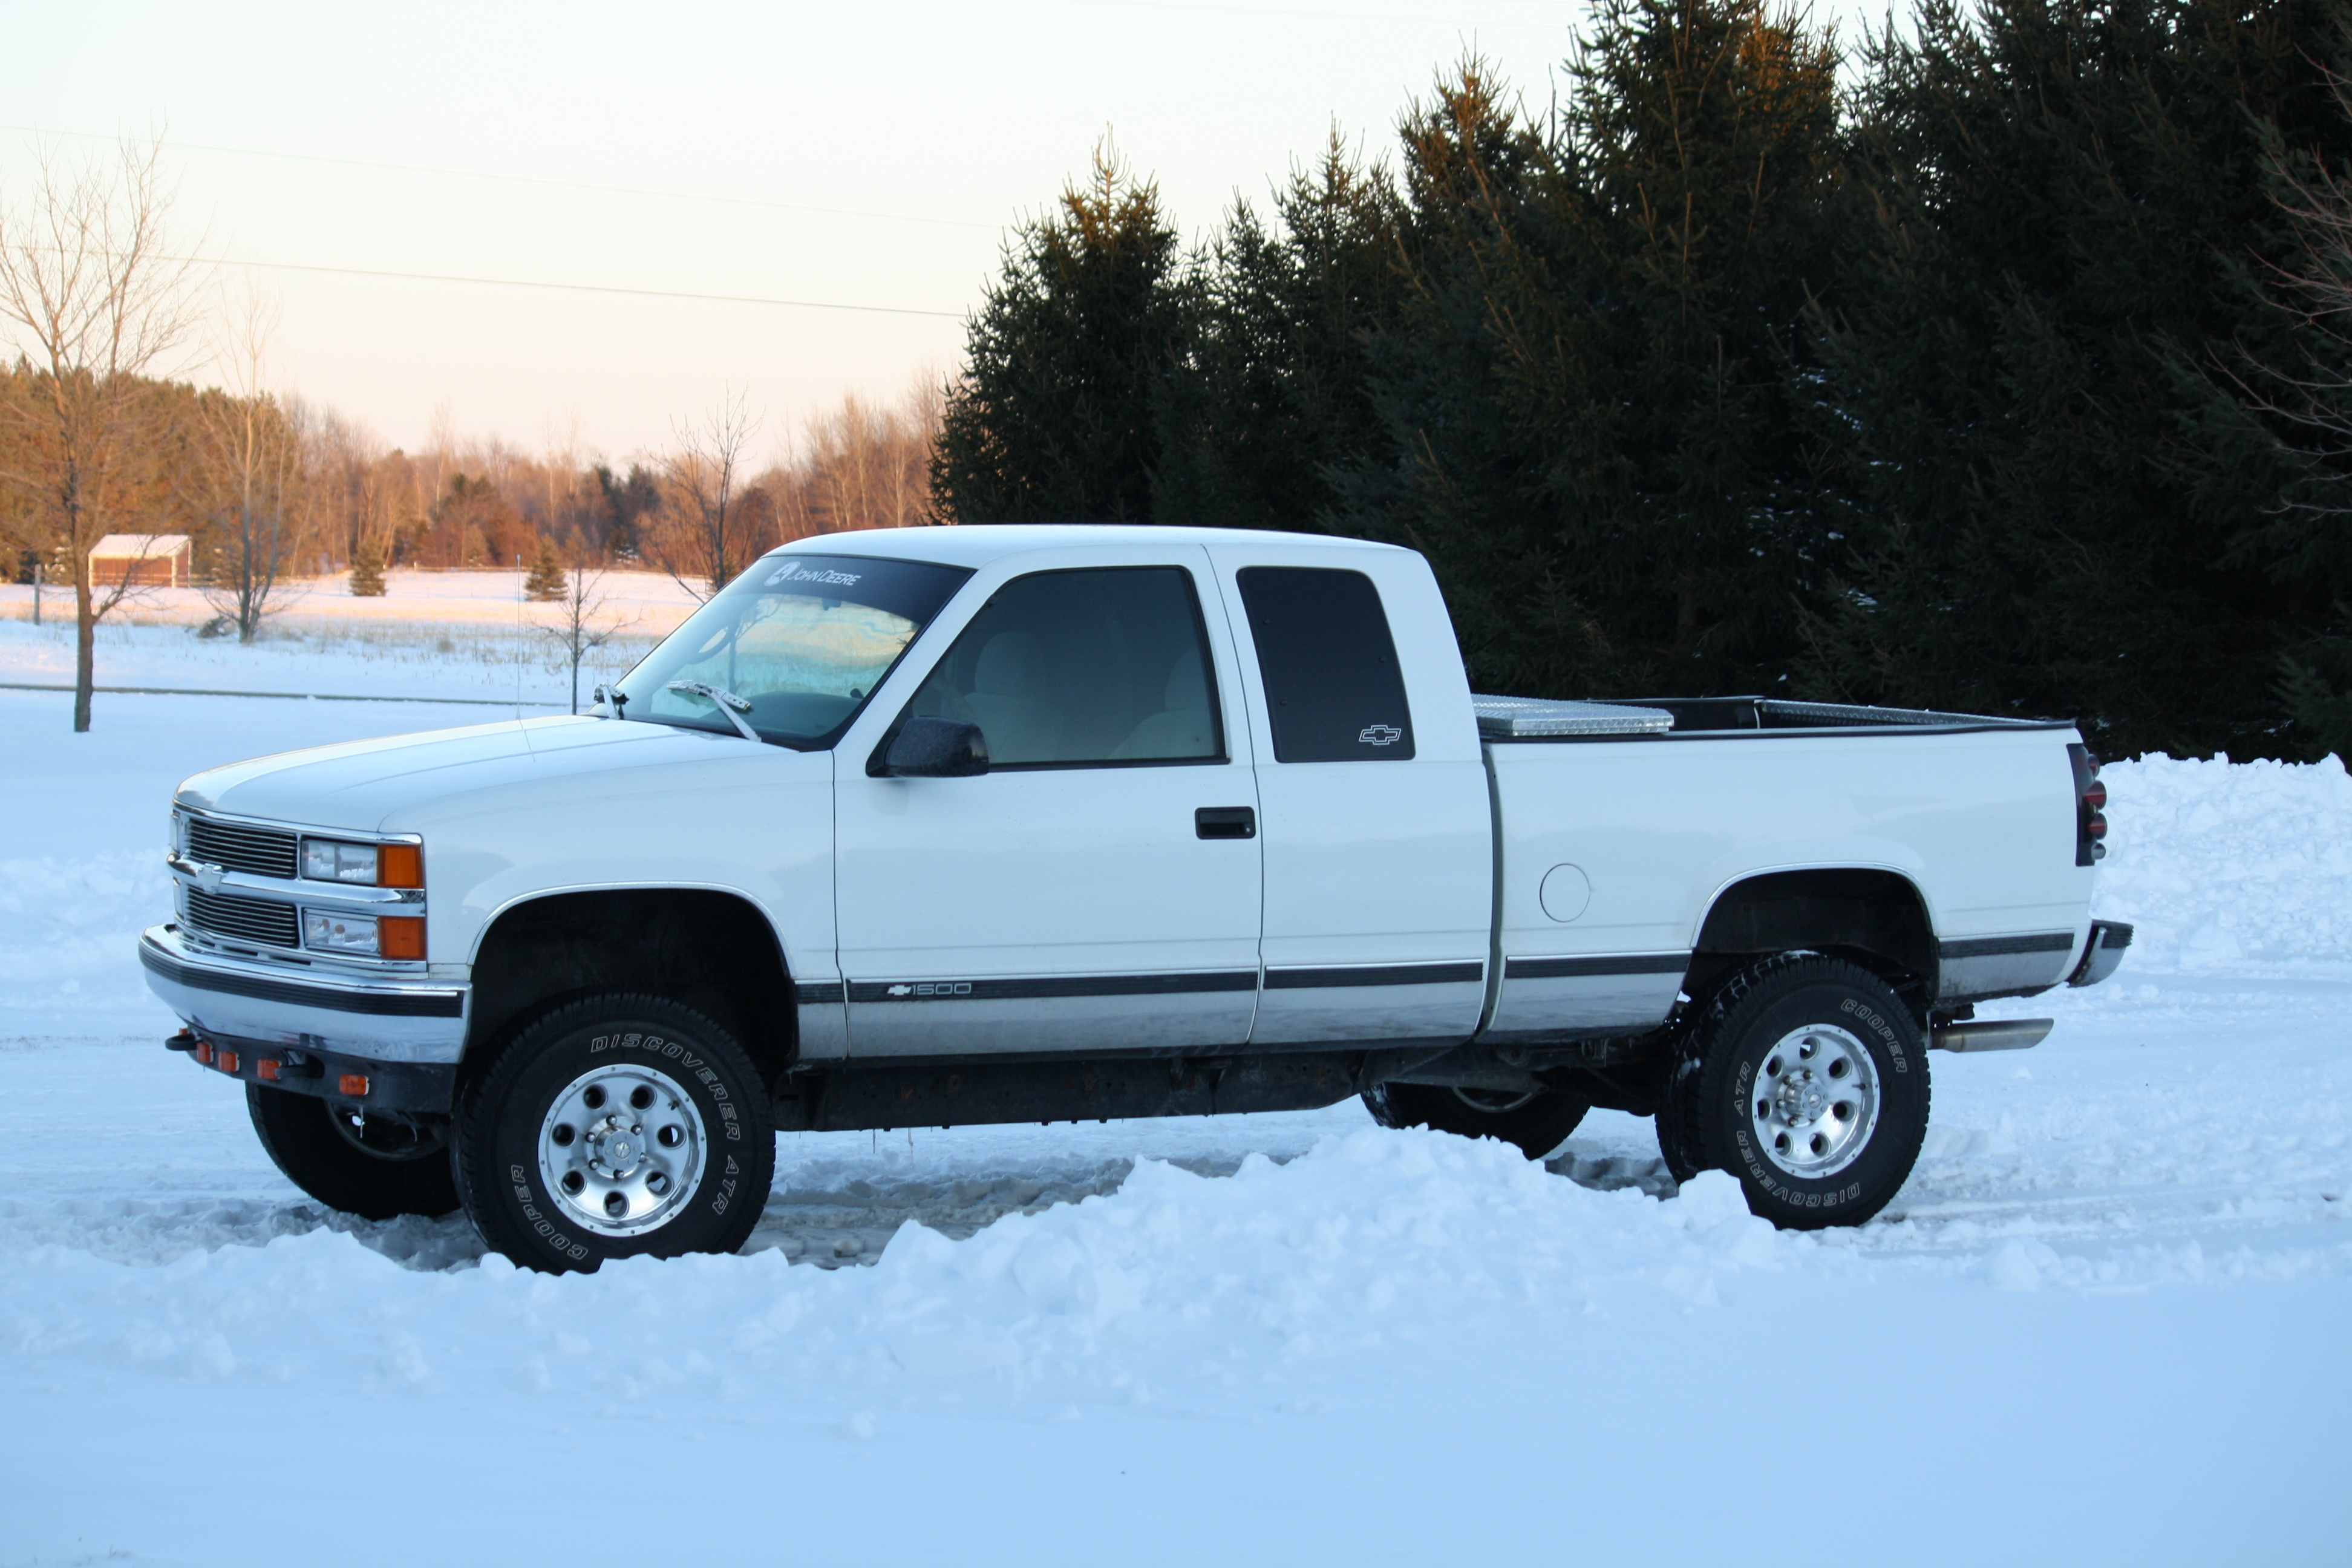 1996chevyman's 1996 Chevrolet 1500 Extended Cab